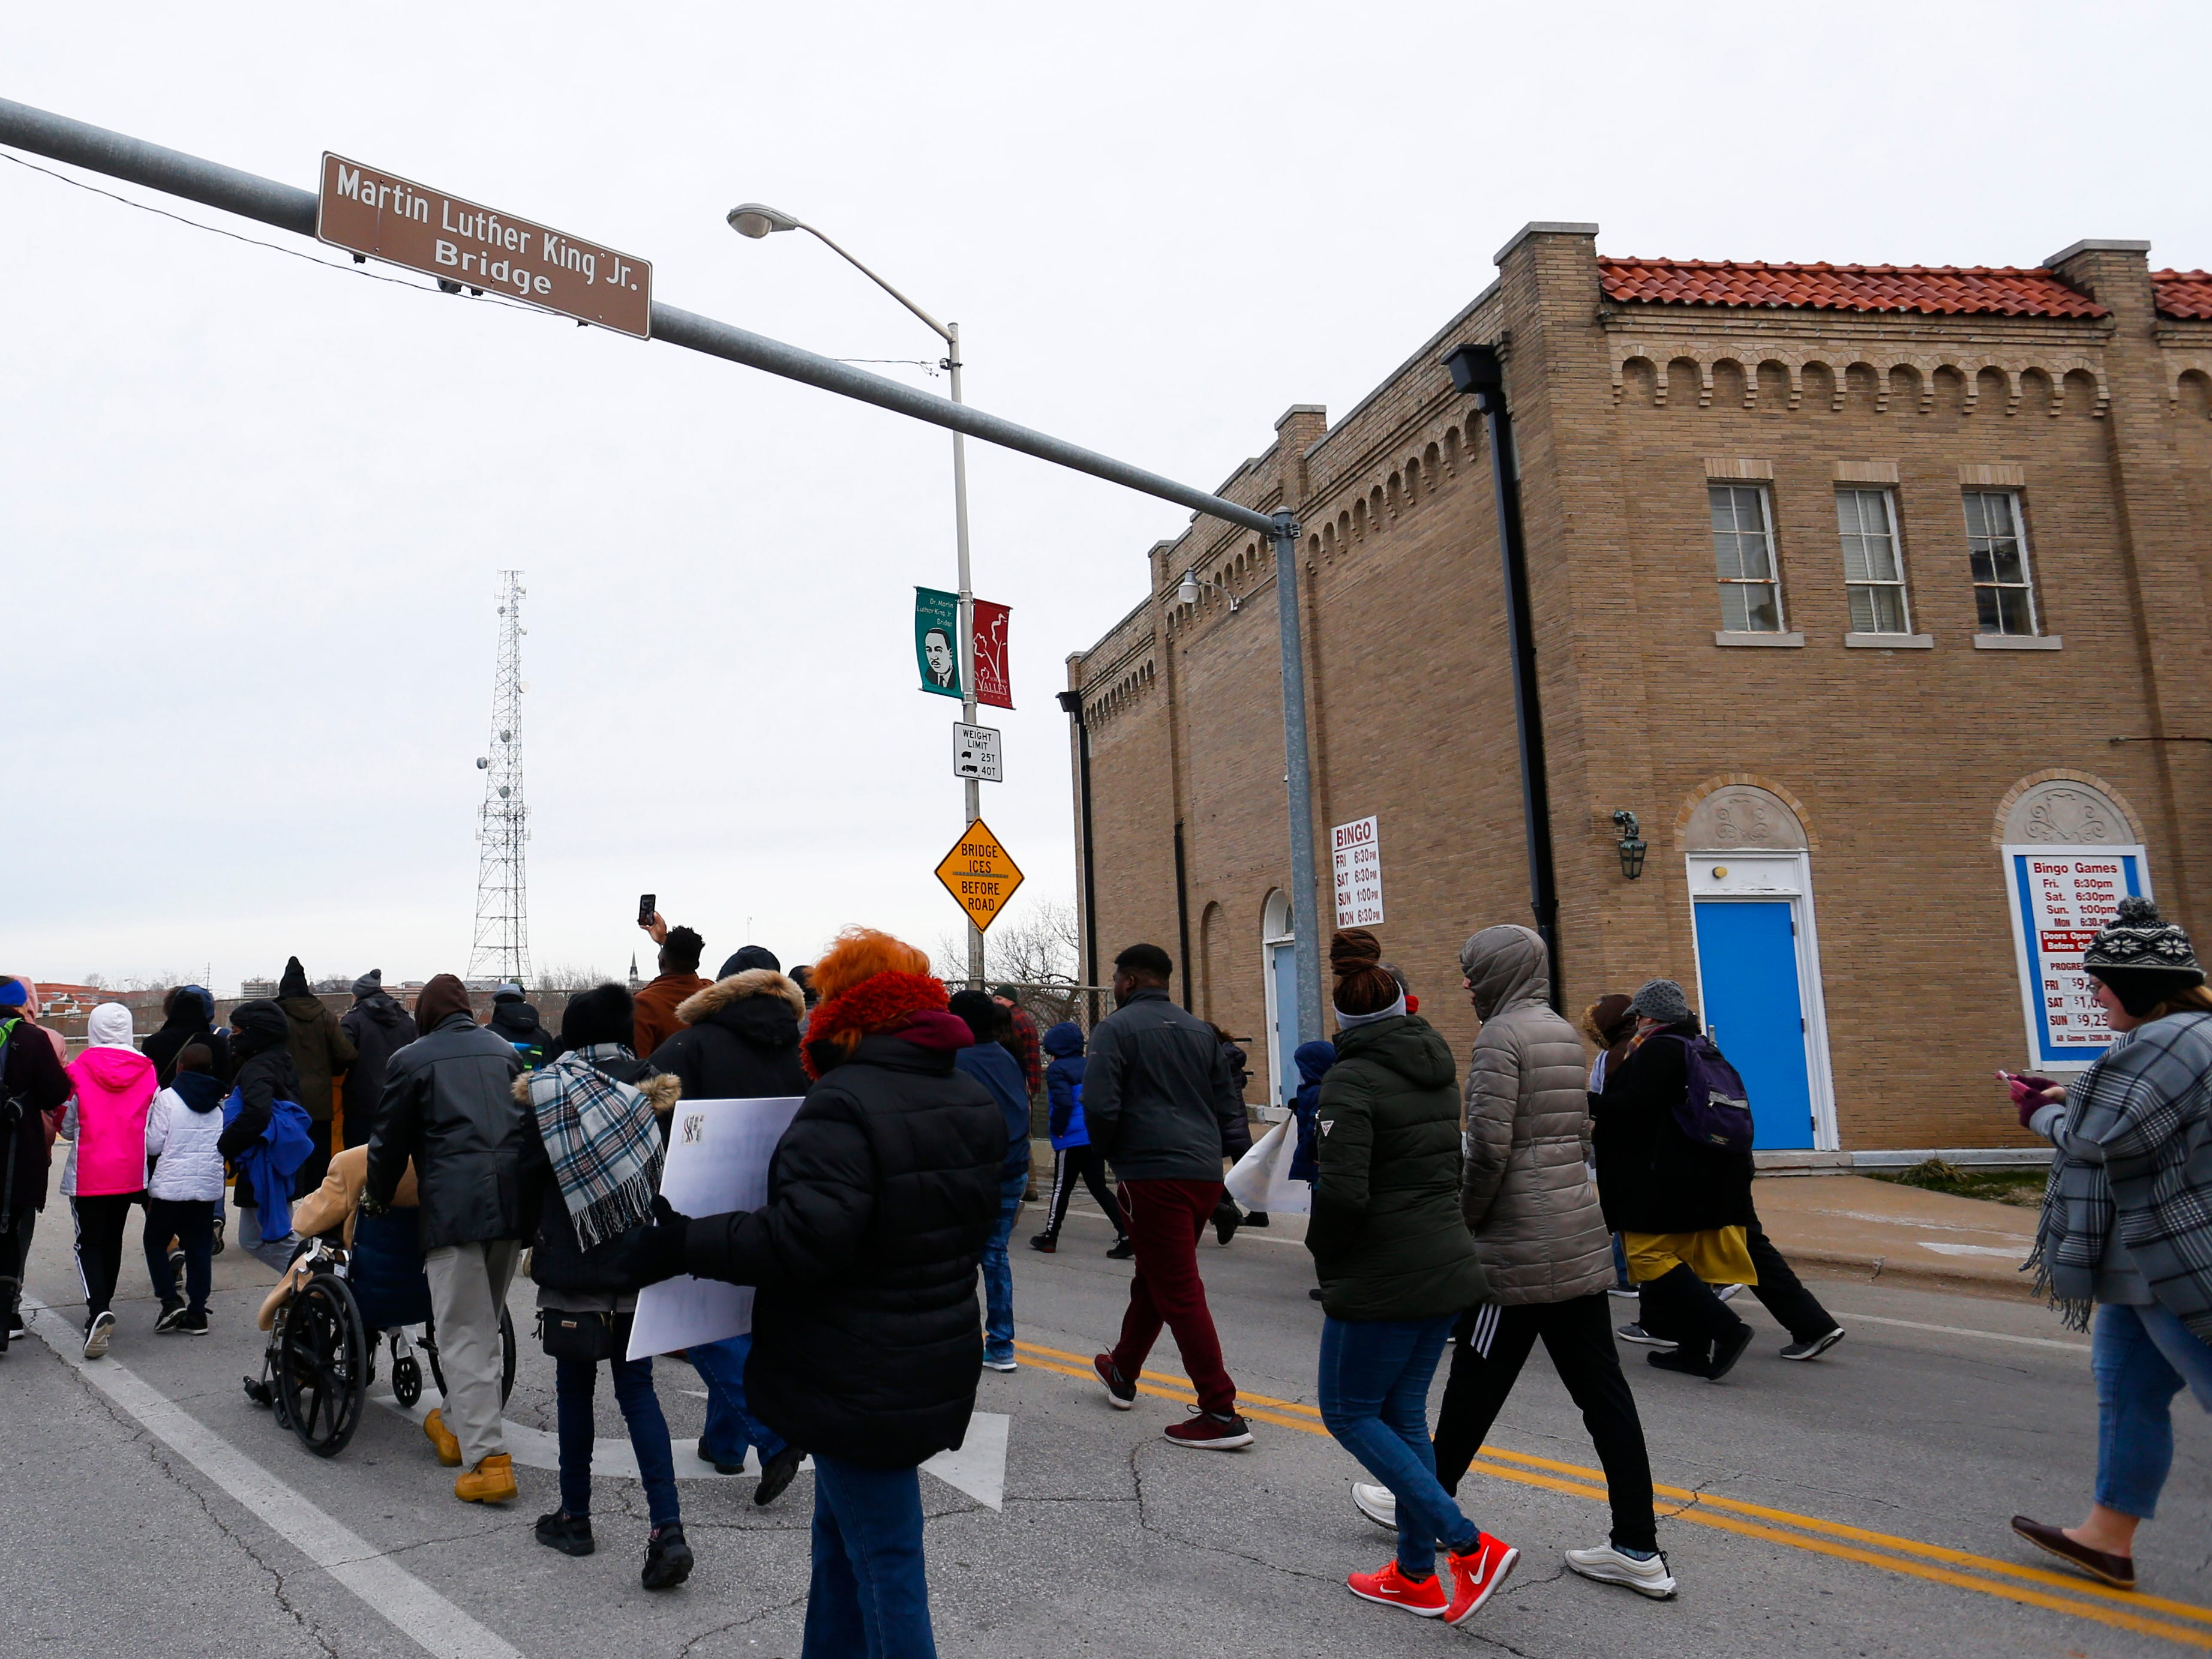 About a thousand people walked from the  Jordan Valley Ice Park, across the Martin Luther King Jr. Bridge, to the Gillioz Theatre as part of the annual Martin Luther King Jr. March and Celebration in downtown Springfield on Monday, Jan. 21, 2019.